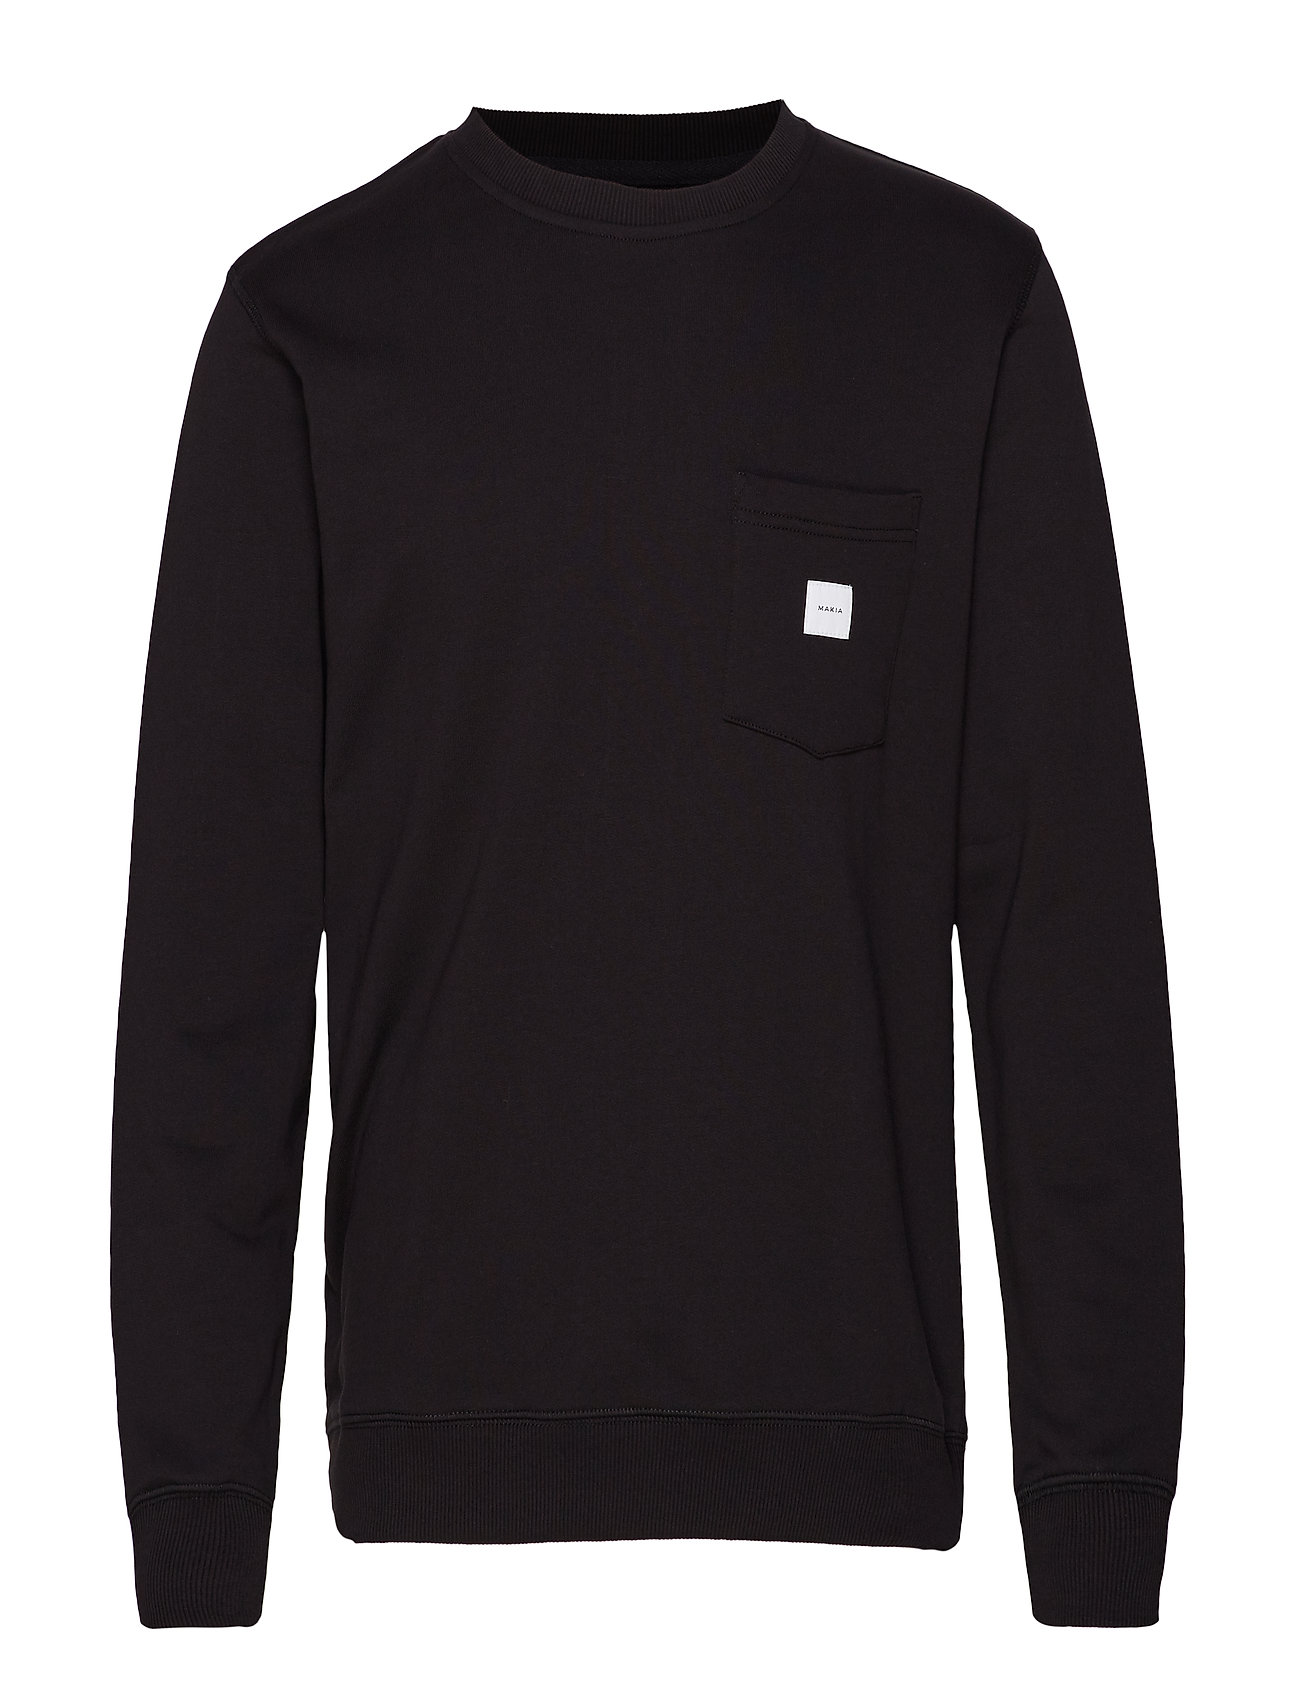 Makia SQUARE POCKET SWEATSHIRT - BLACK